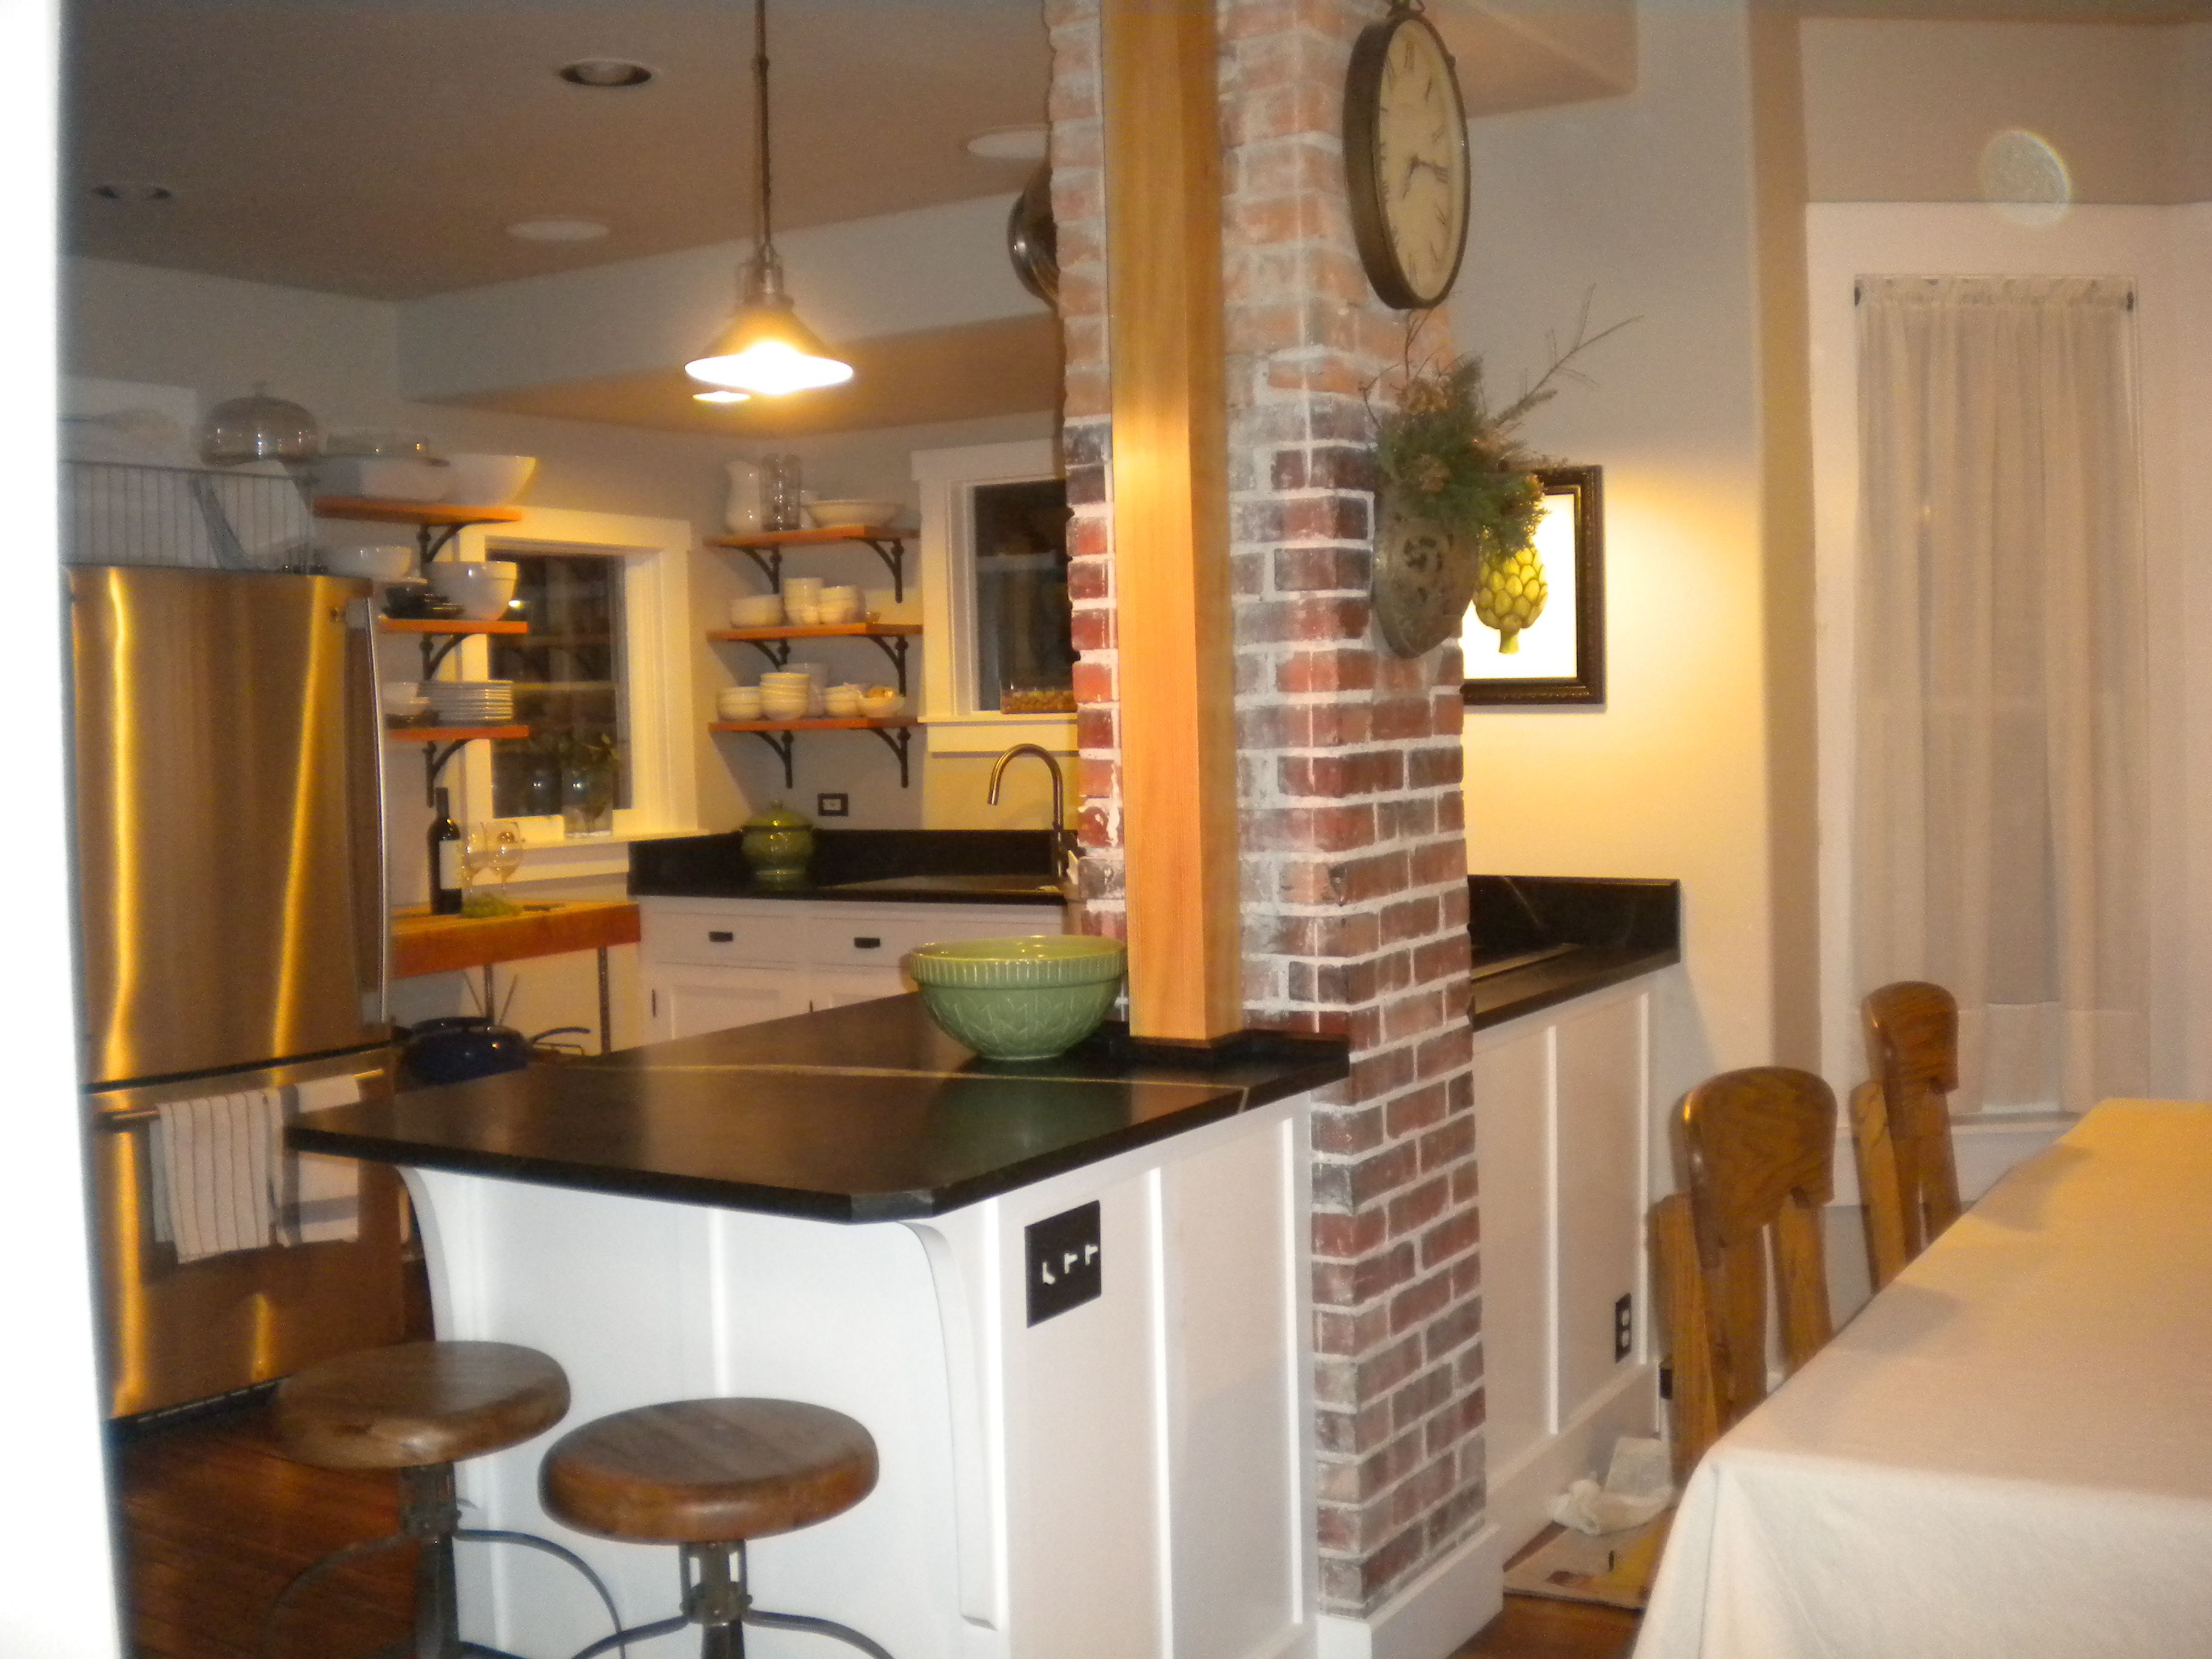 Updated kitchen in an 1895 cottage. Soapstone counters, open shelving.